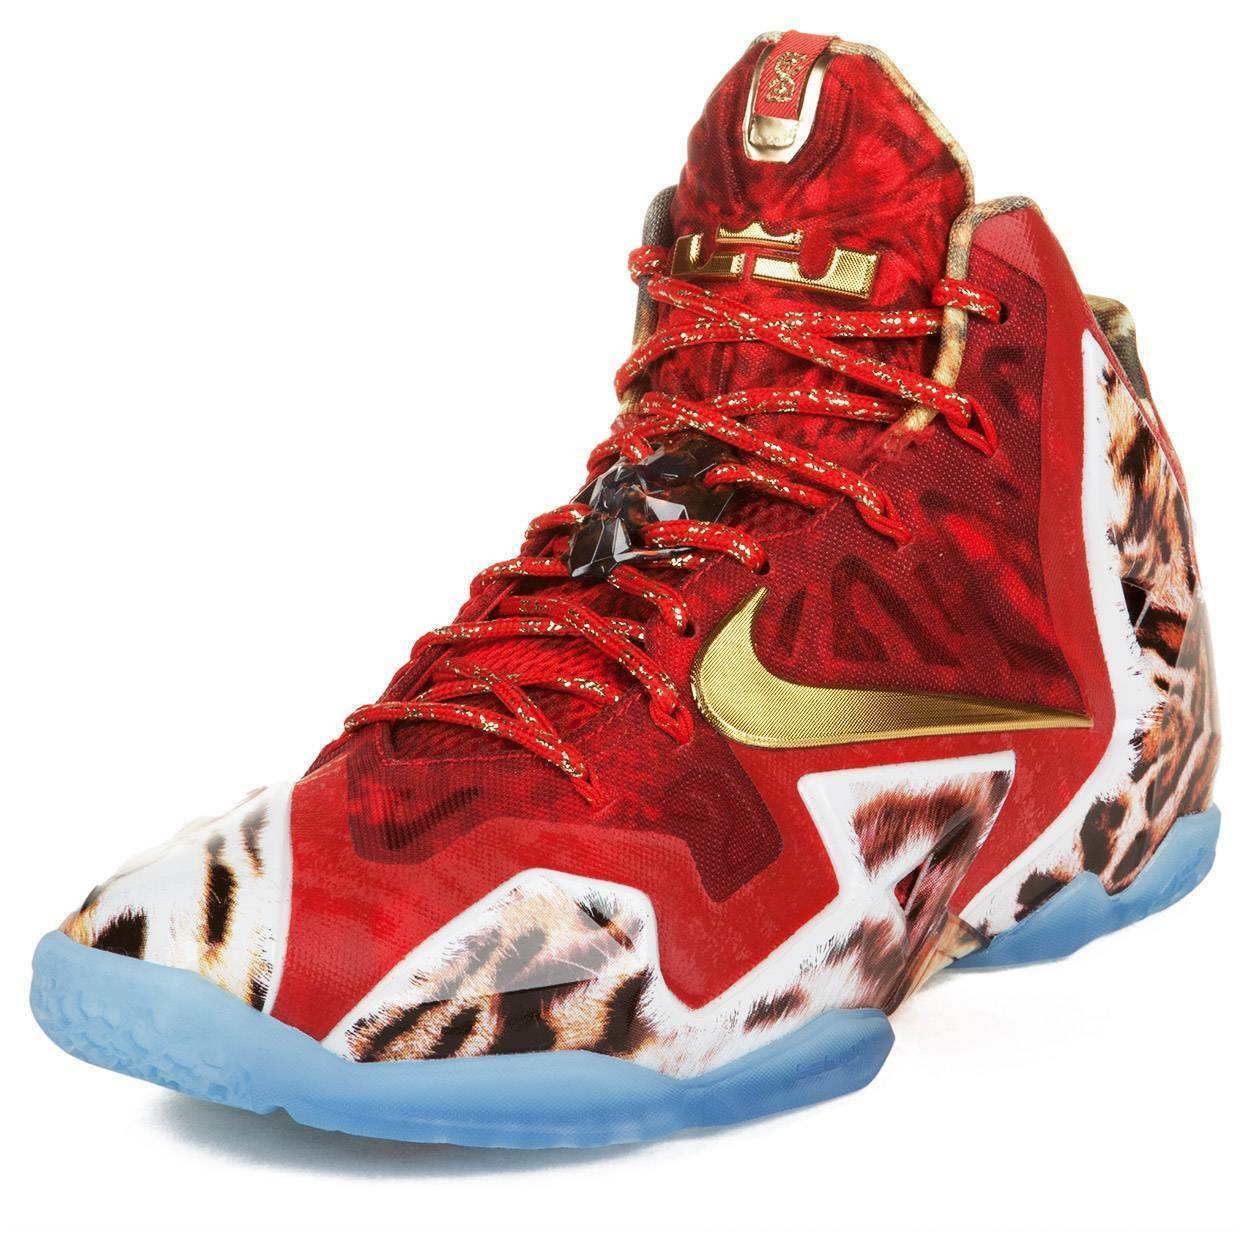 Nike Mens Lebron XI Premium Challenge Red Metallic gold-Ic 650884-674 Size 7.5